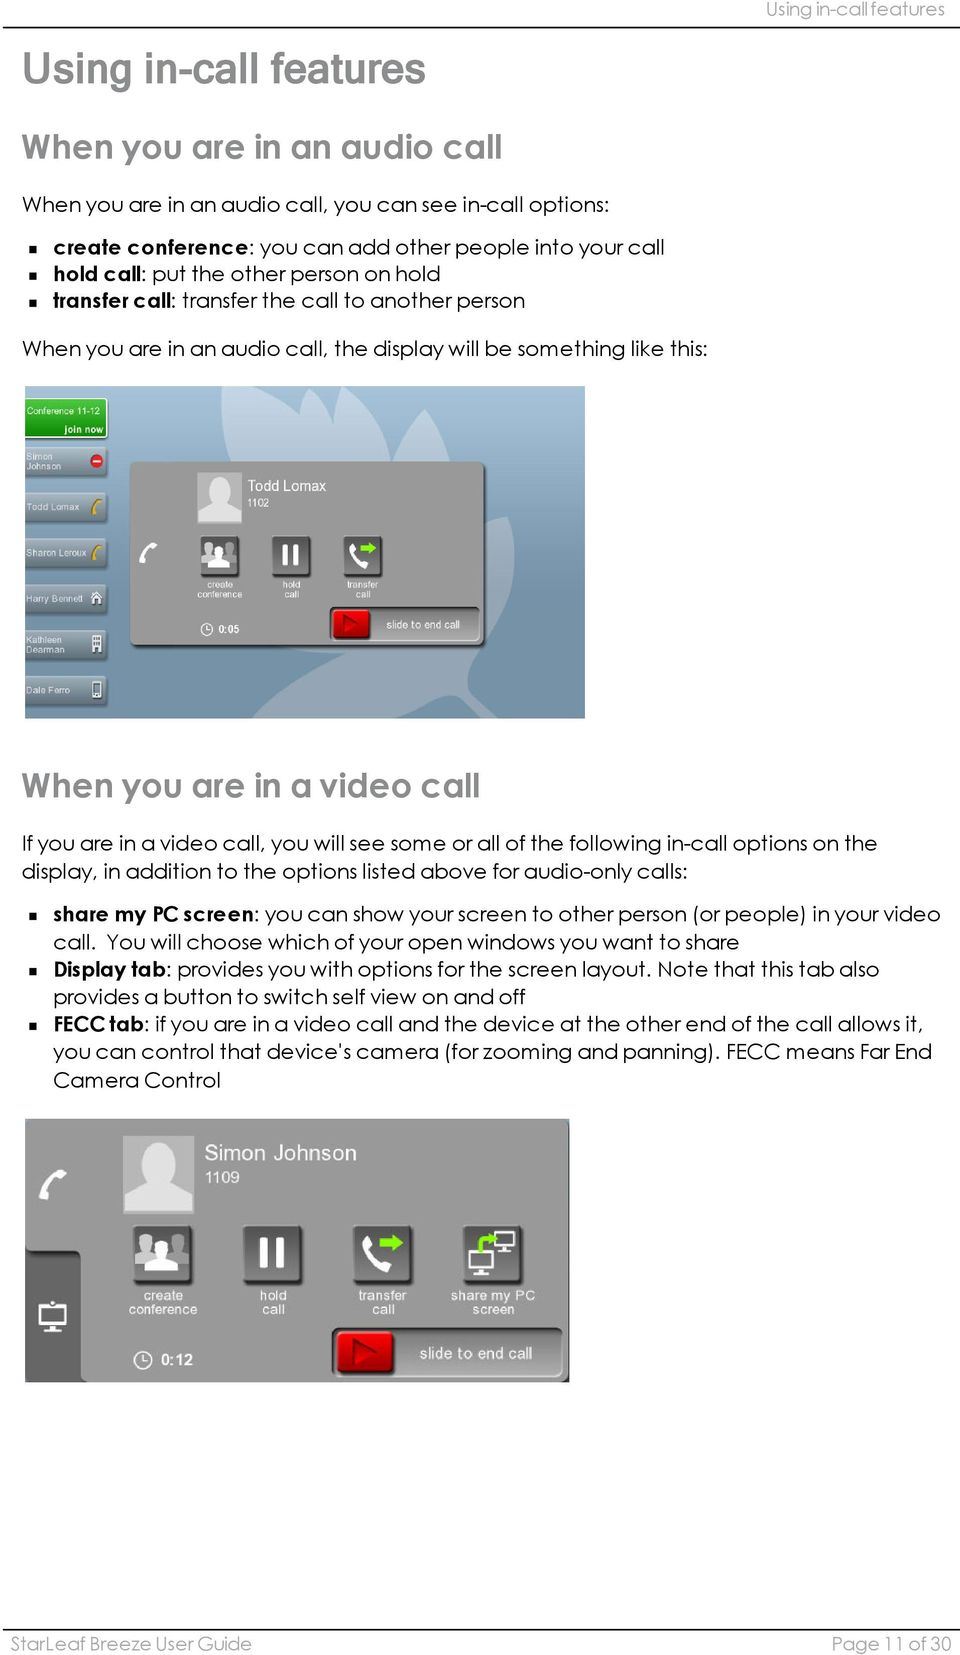 in a video call, you will see some or all of the following in-call options on the display, in addition to the options listed above for audio-only calls: share my PC screen: you can show your screen